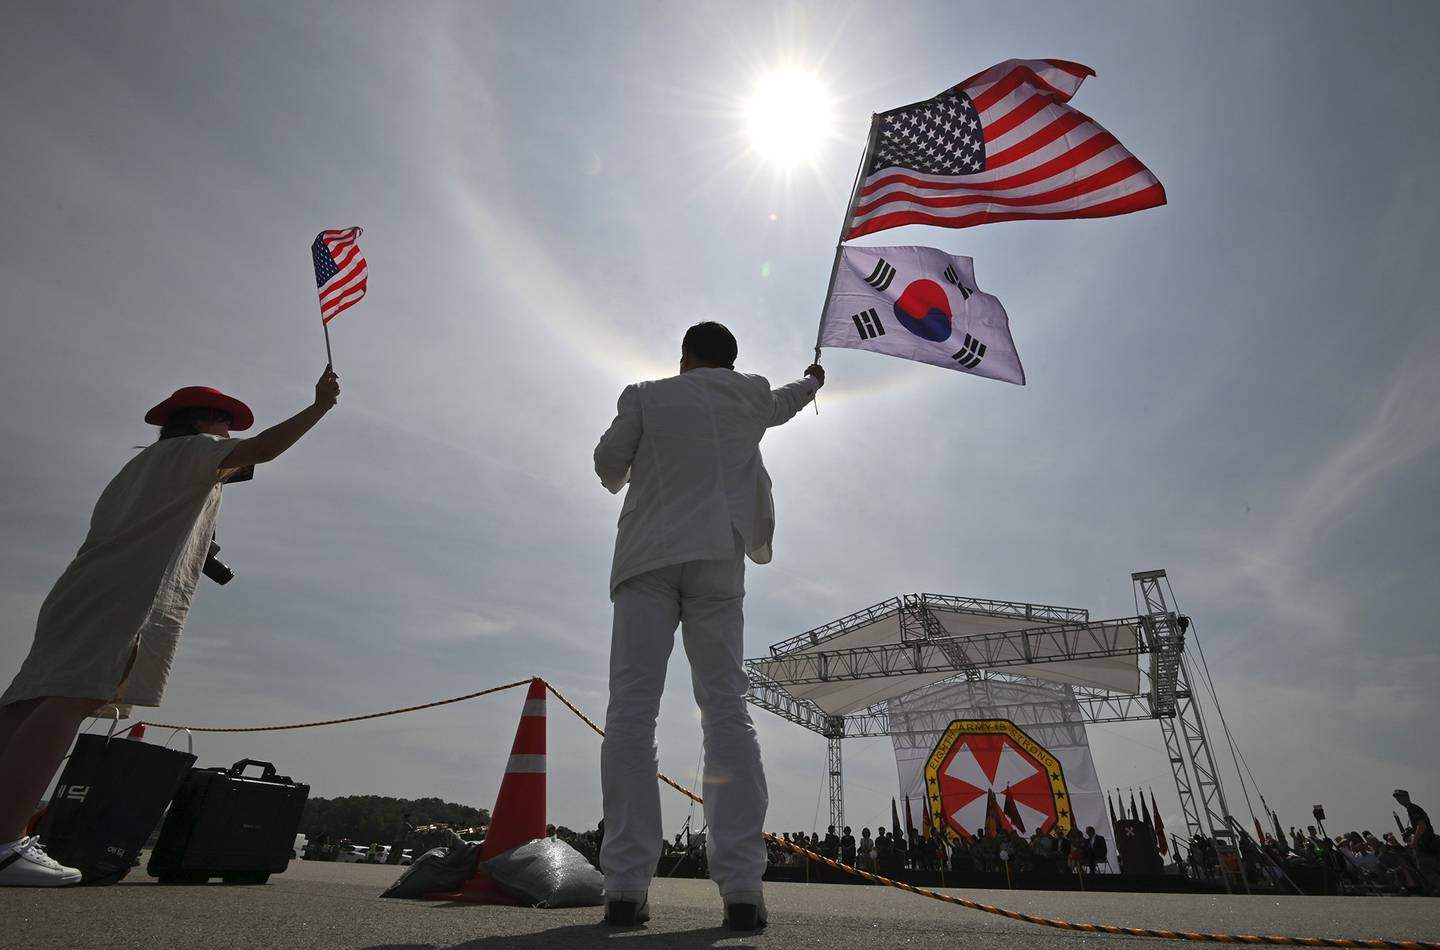 A man and a woman wave flags during a ceremony to commemorate the 75th anniversary of the Eighth U.S. Army at Camp Humphreys in Pyeongtaek on June 8, 2019.